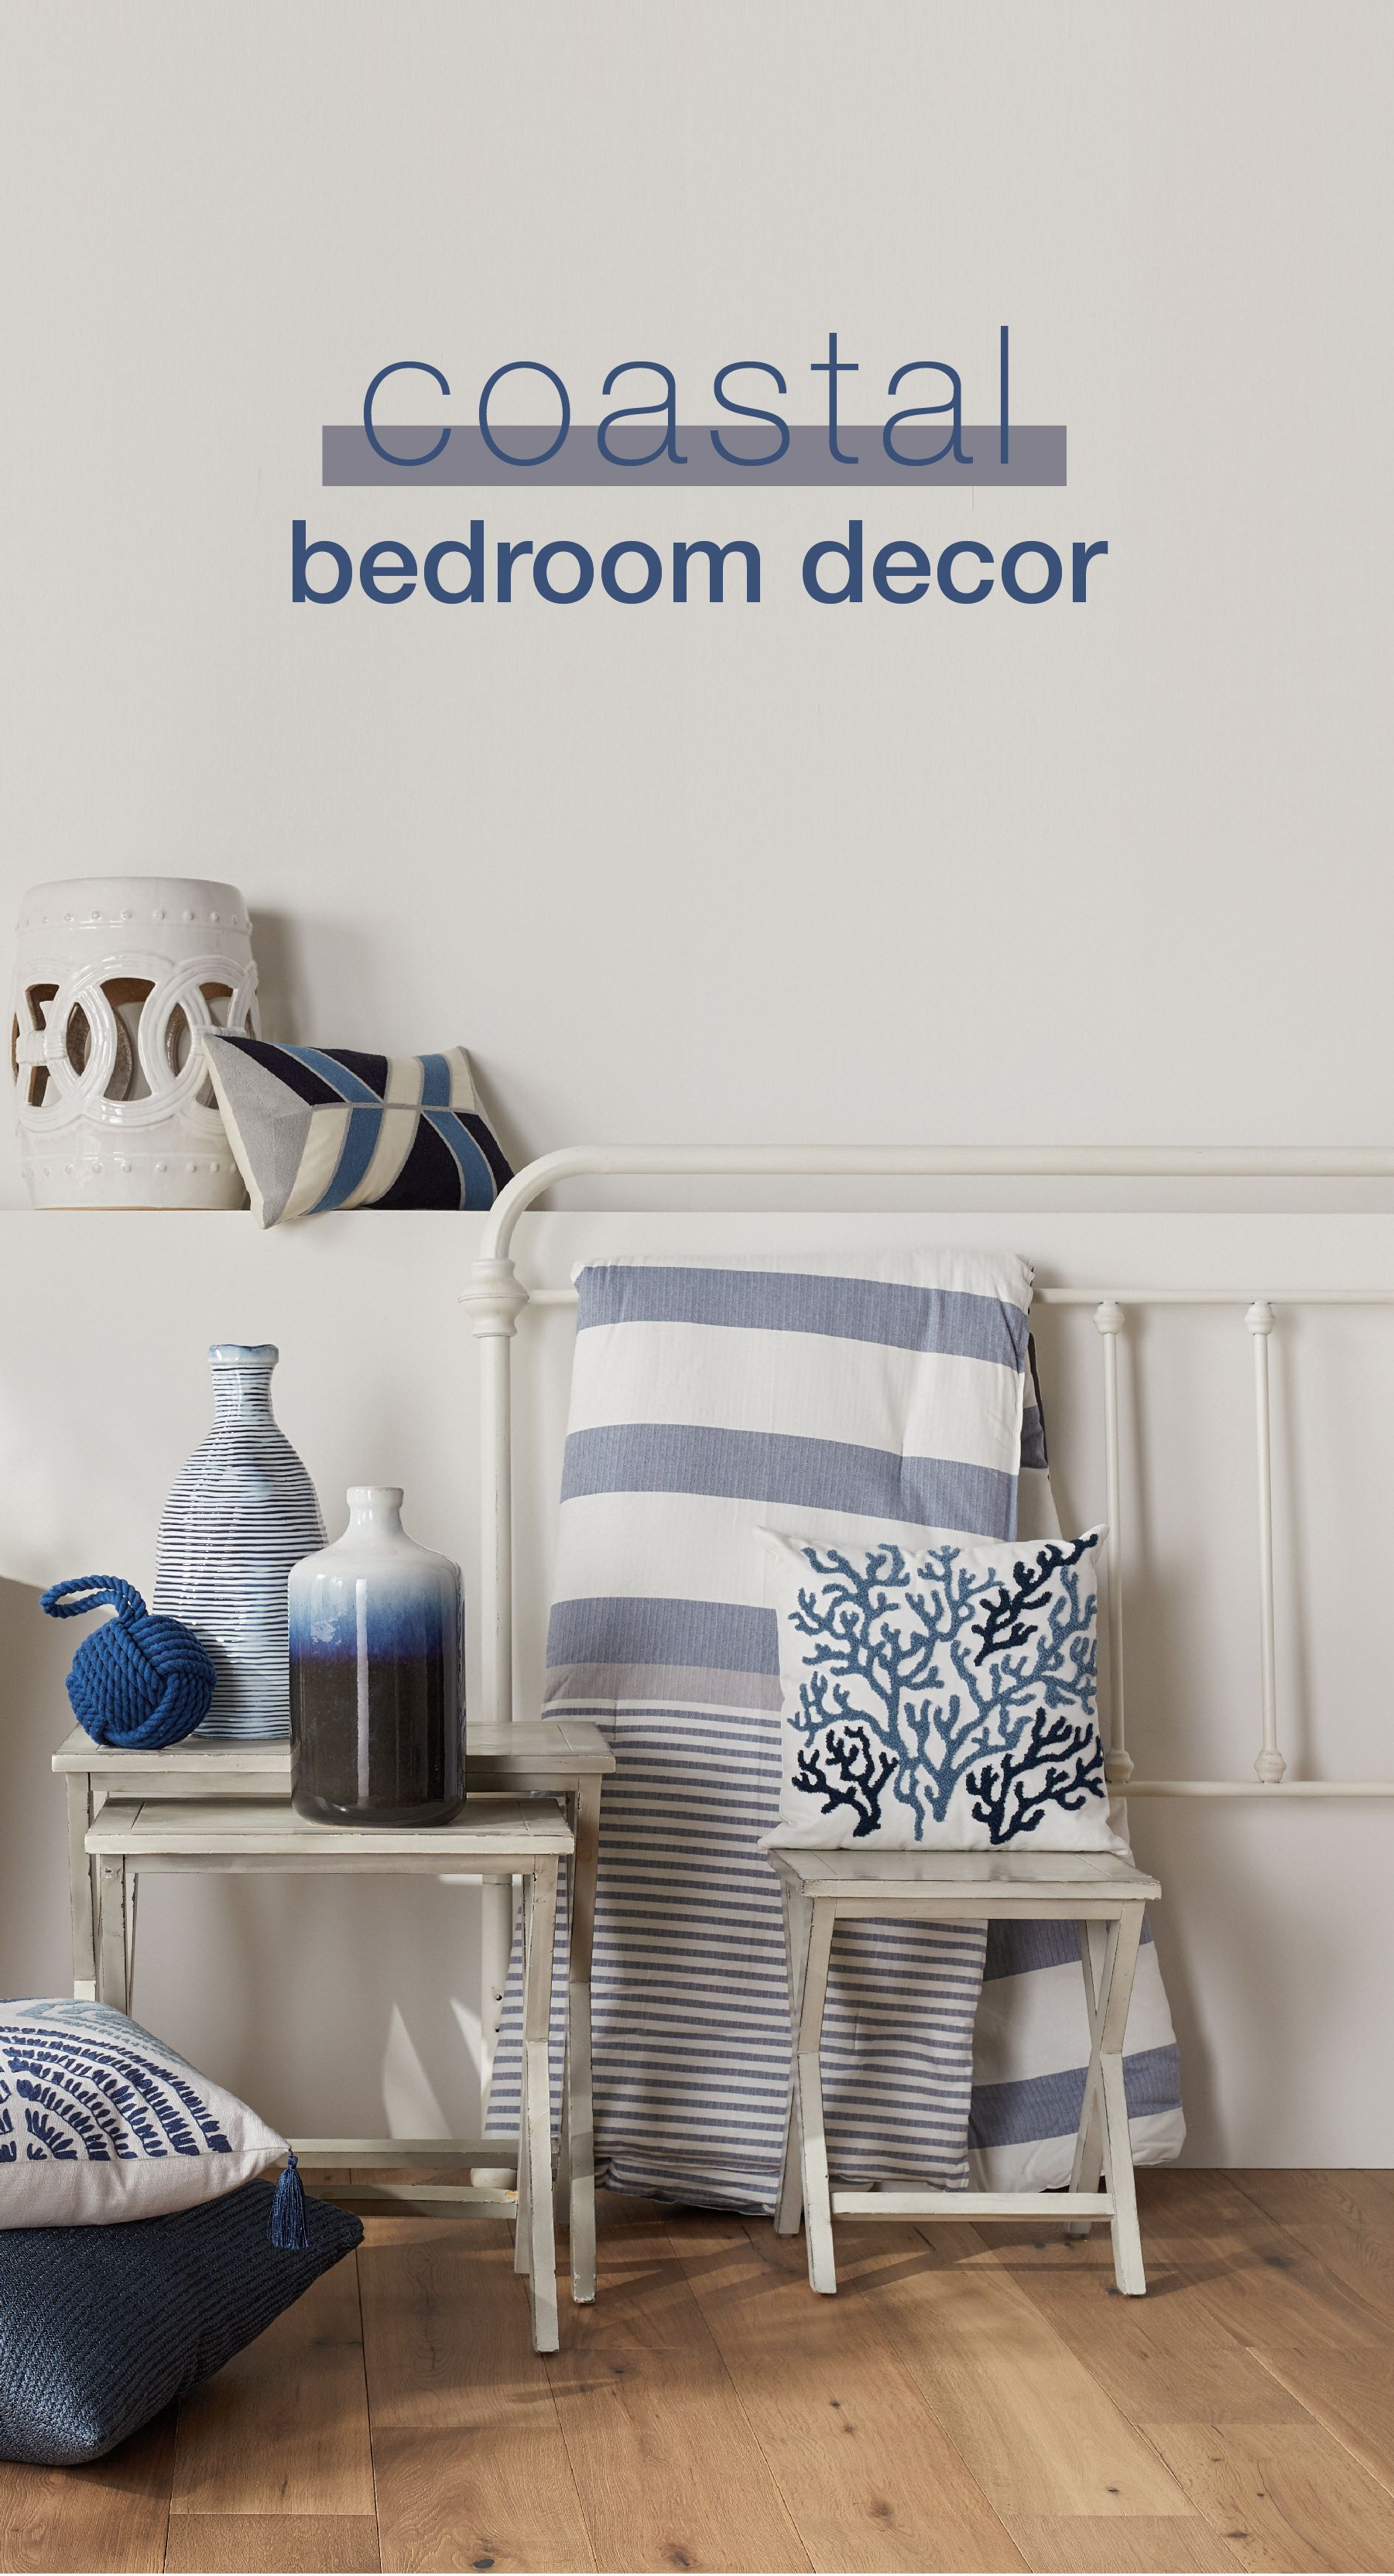 Give your bedroom a relaxing Coastal makeover with